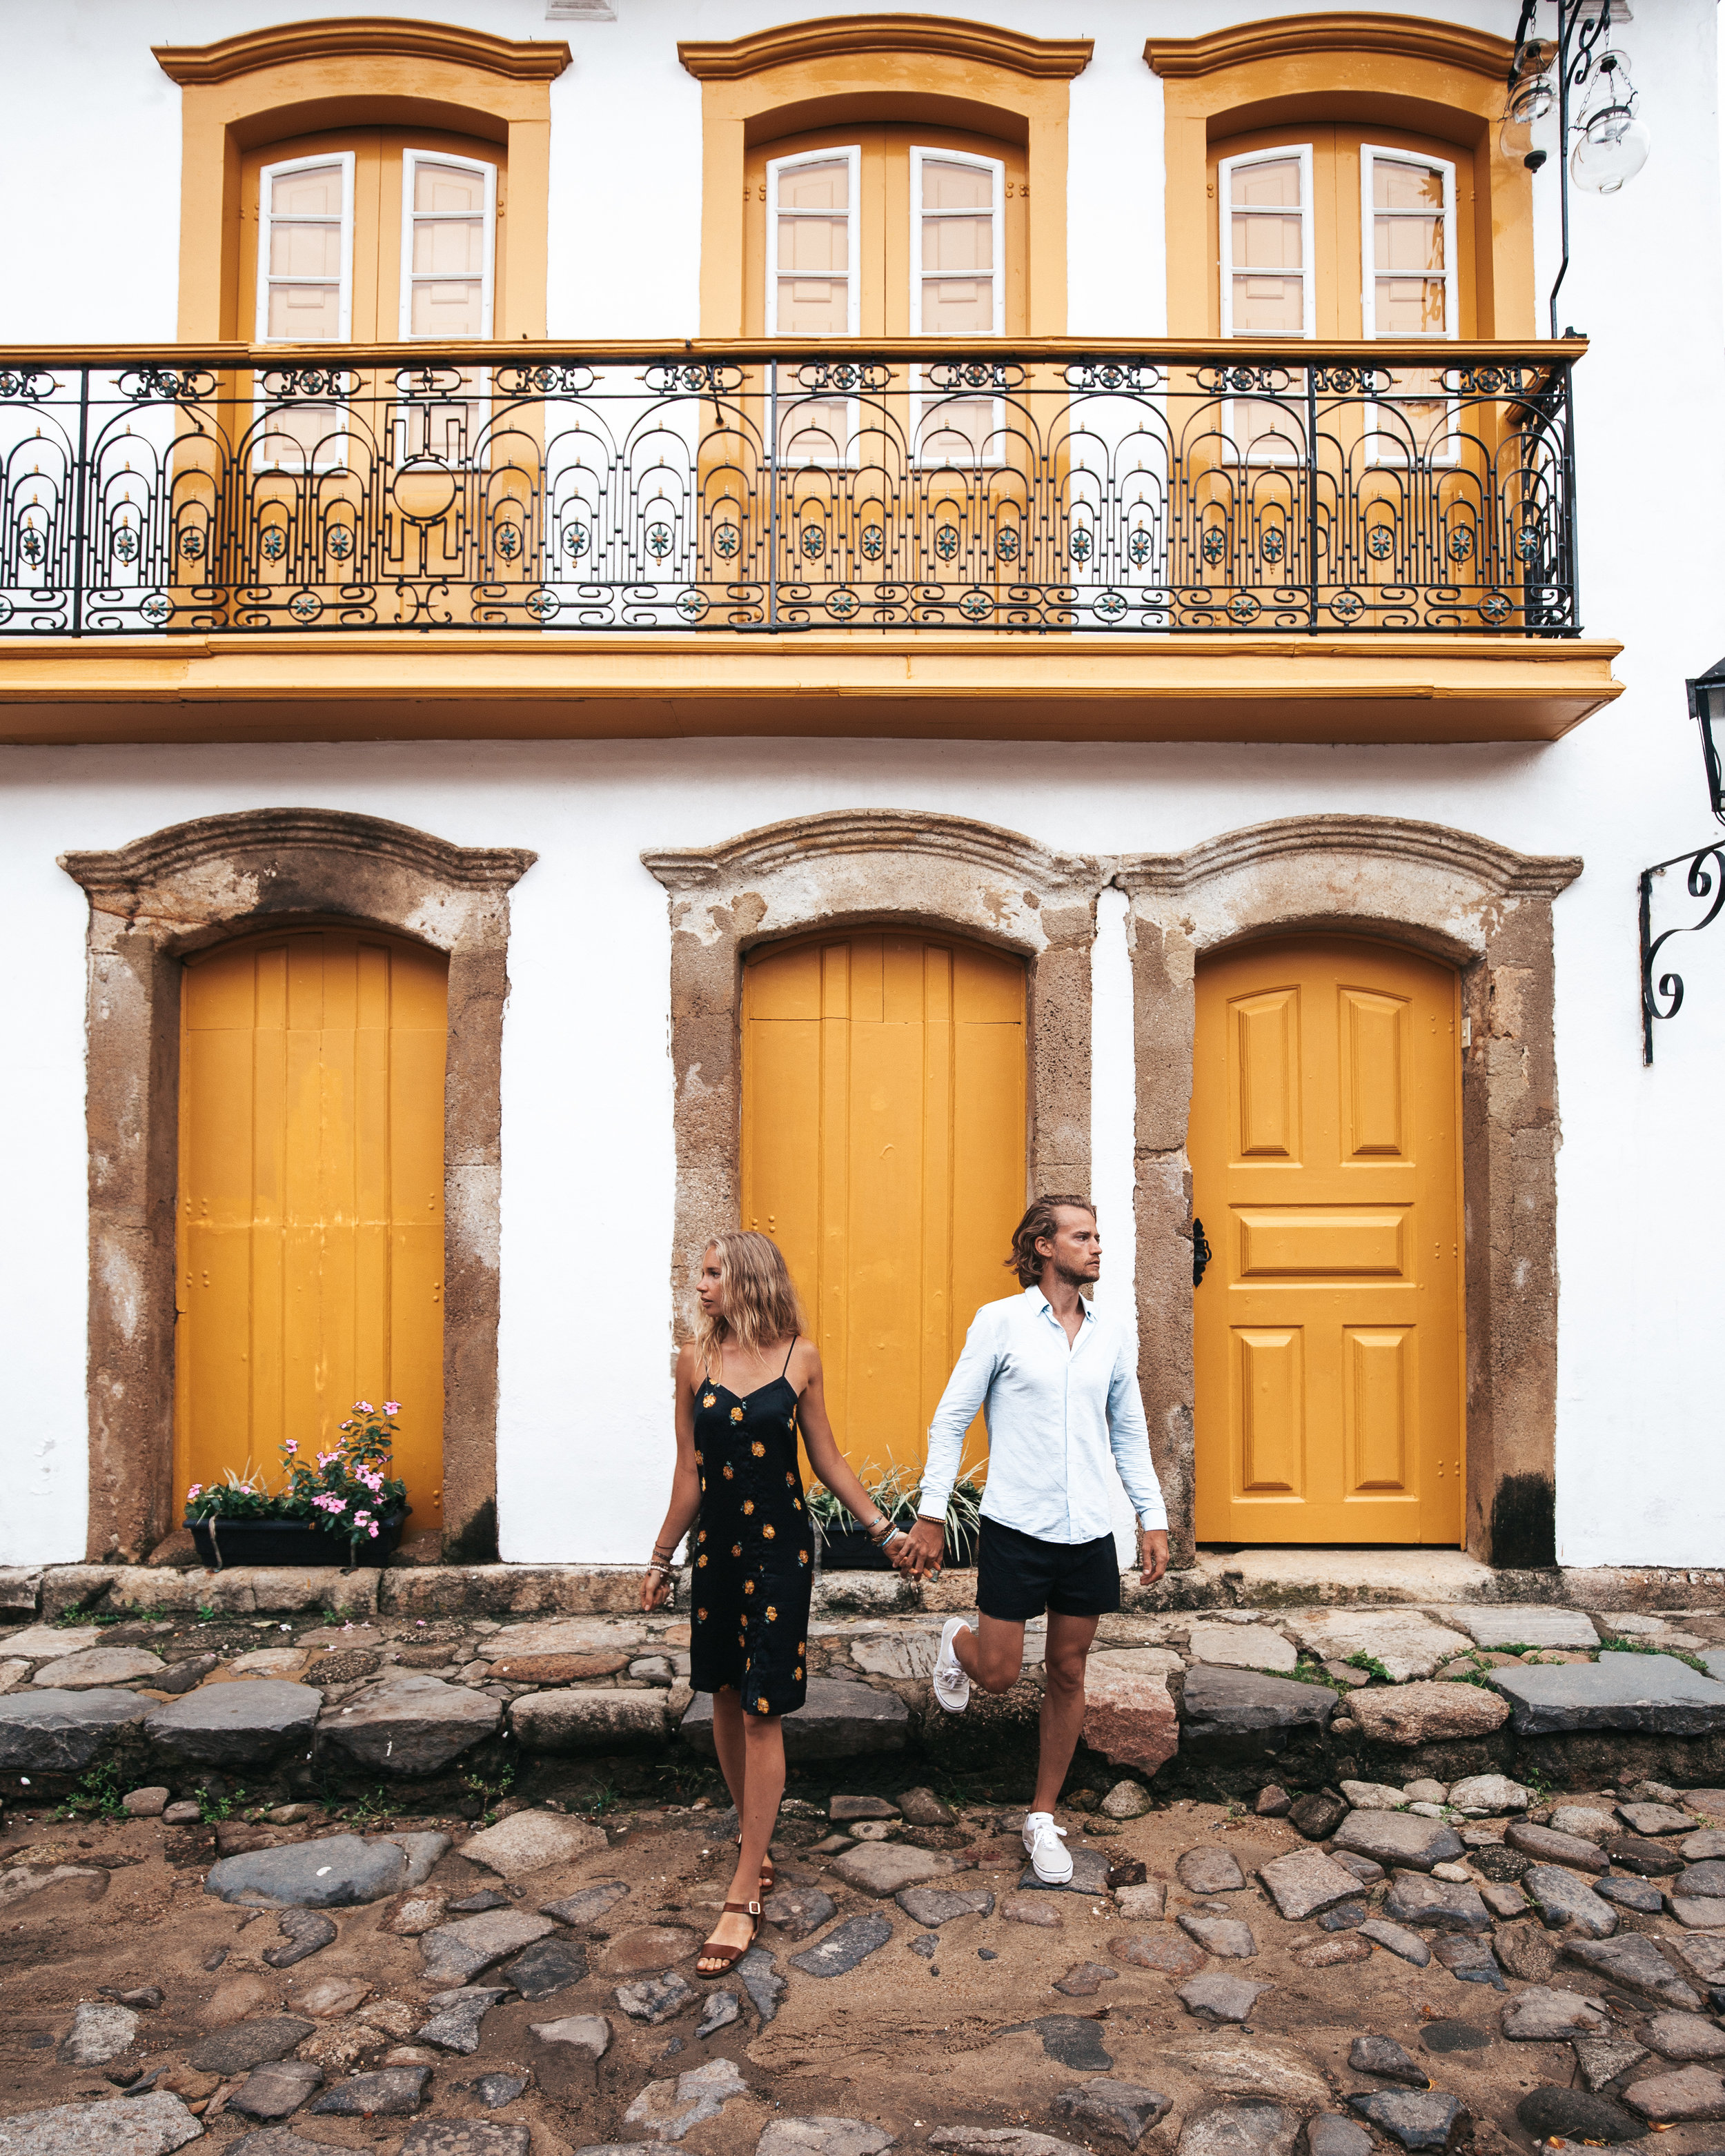 Travel Guide to Paraty Brazil - The Escape Artists